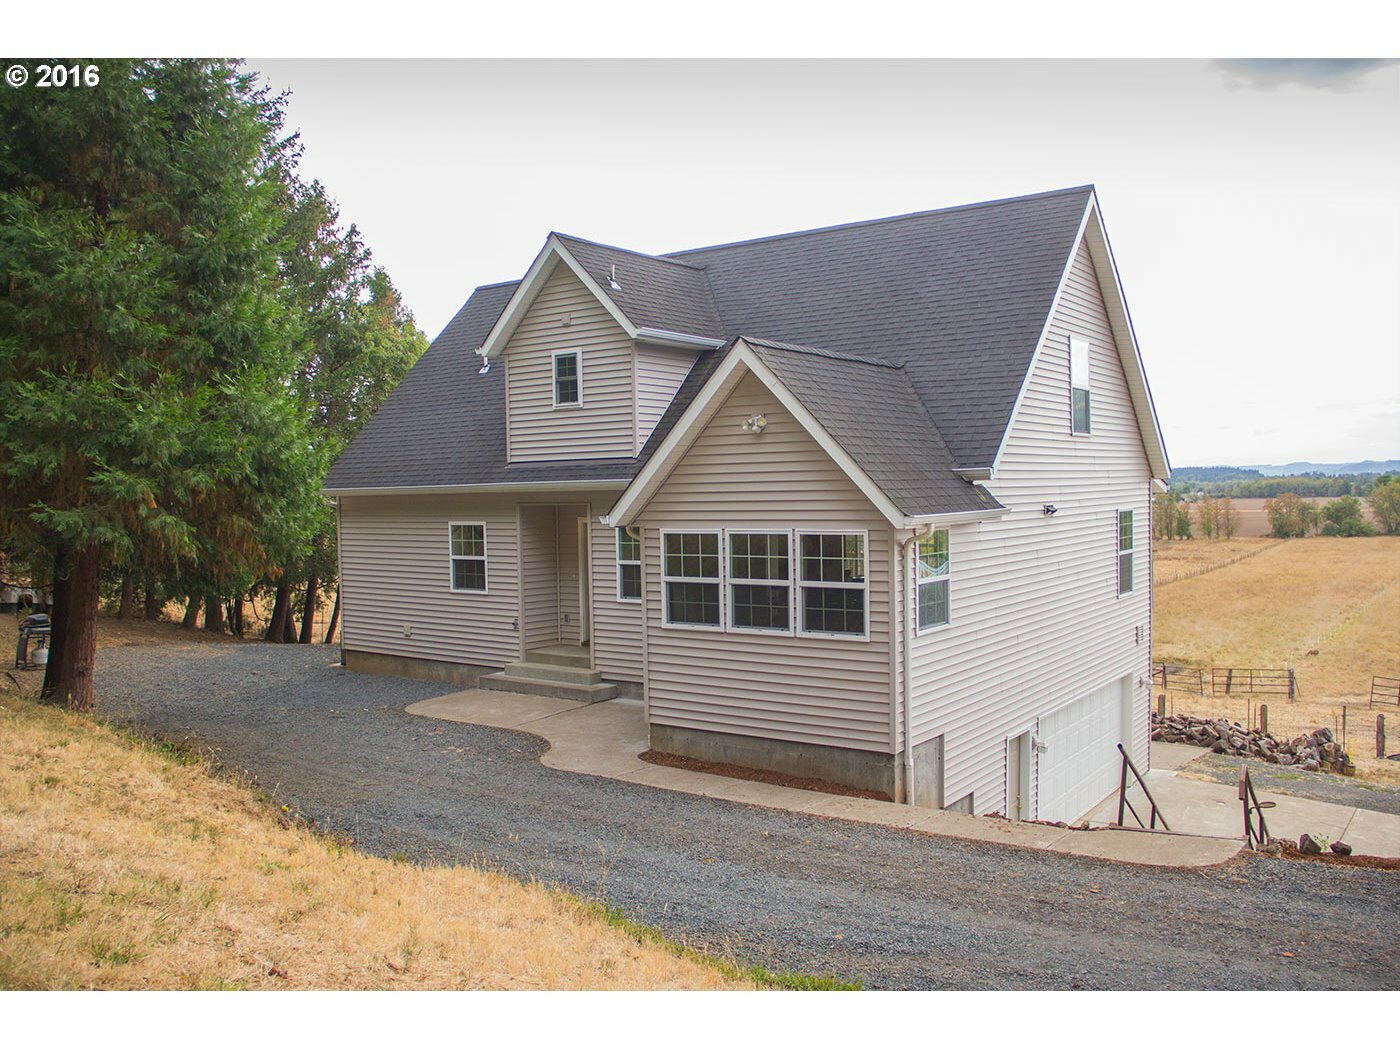 83725 S Morningstar Rd, Creswell, OR - USA (photo 1)